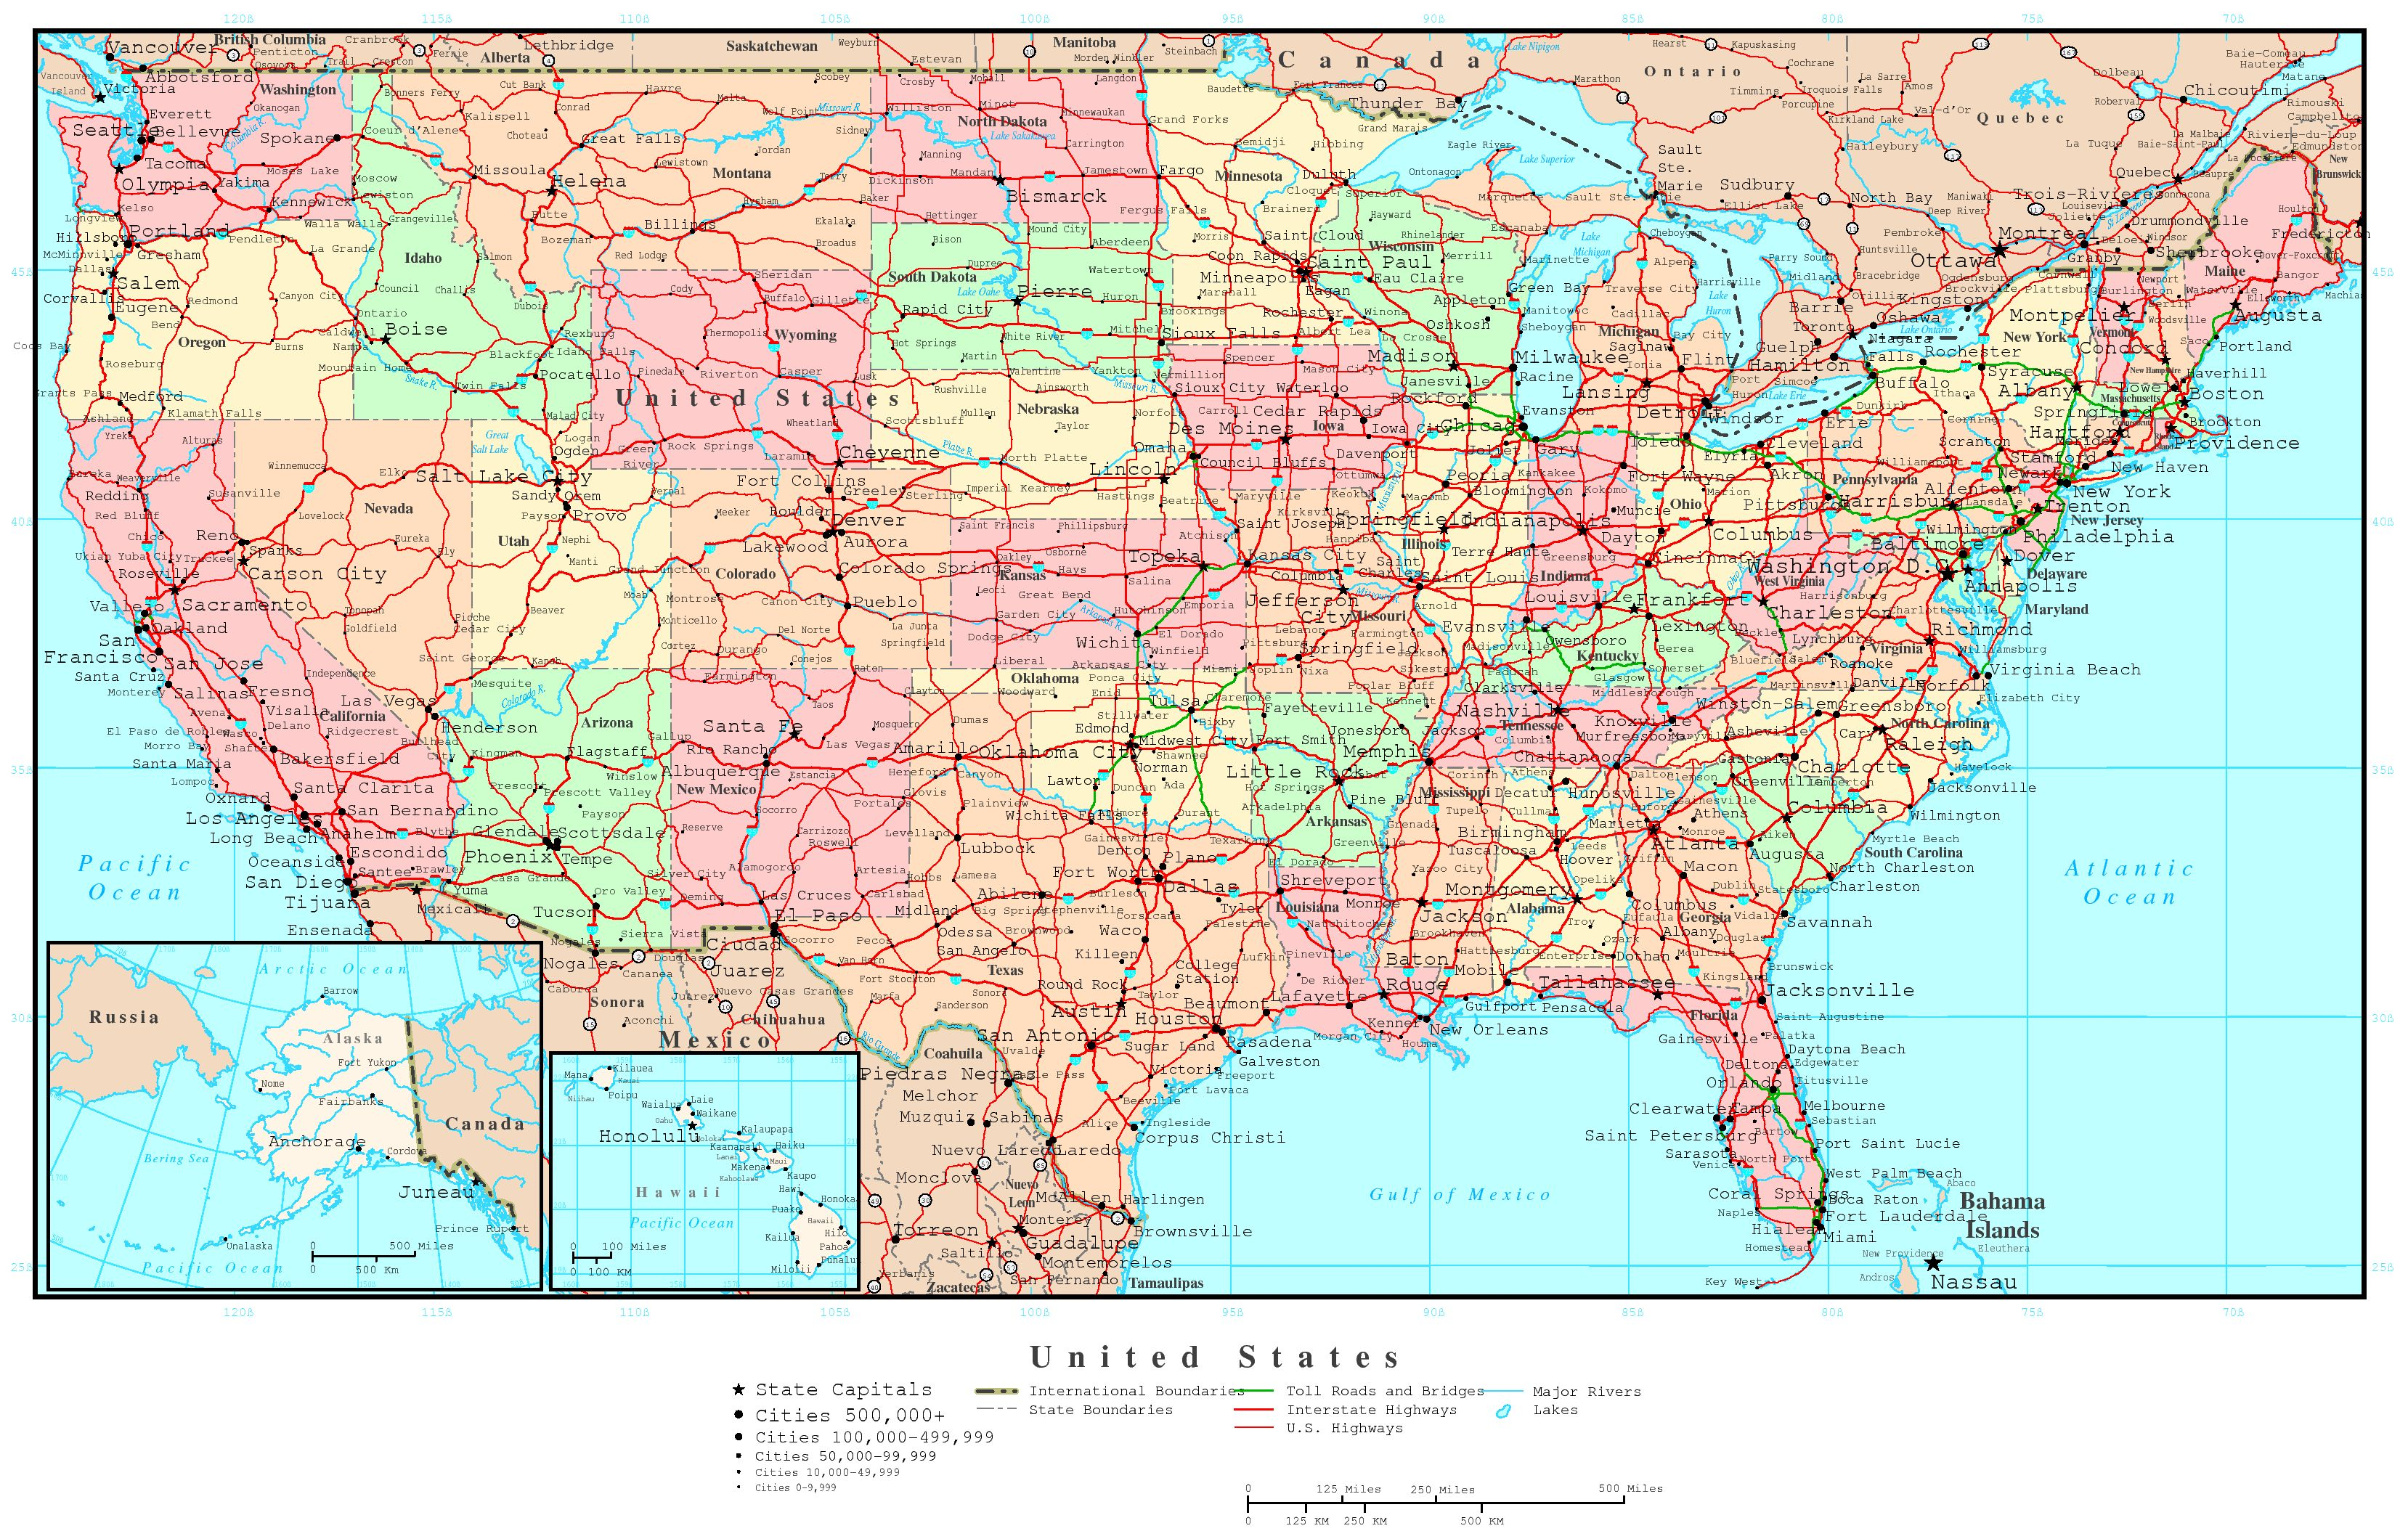 Southeast USA Wall Map Mapscom Map S E Usa Google Images Download - Eastern us airports map